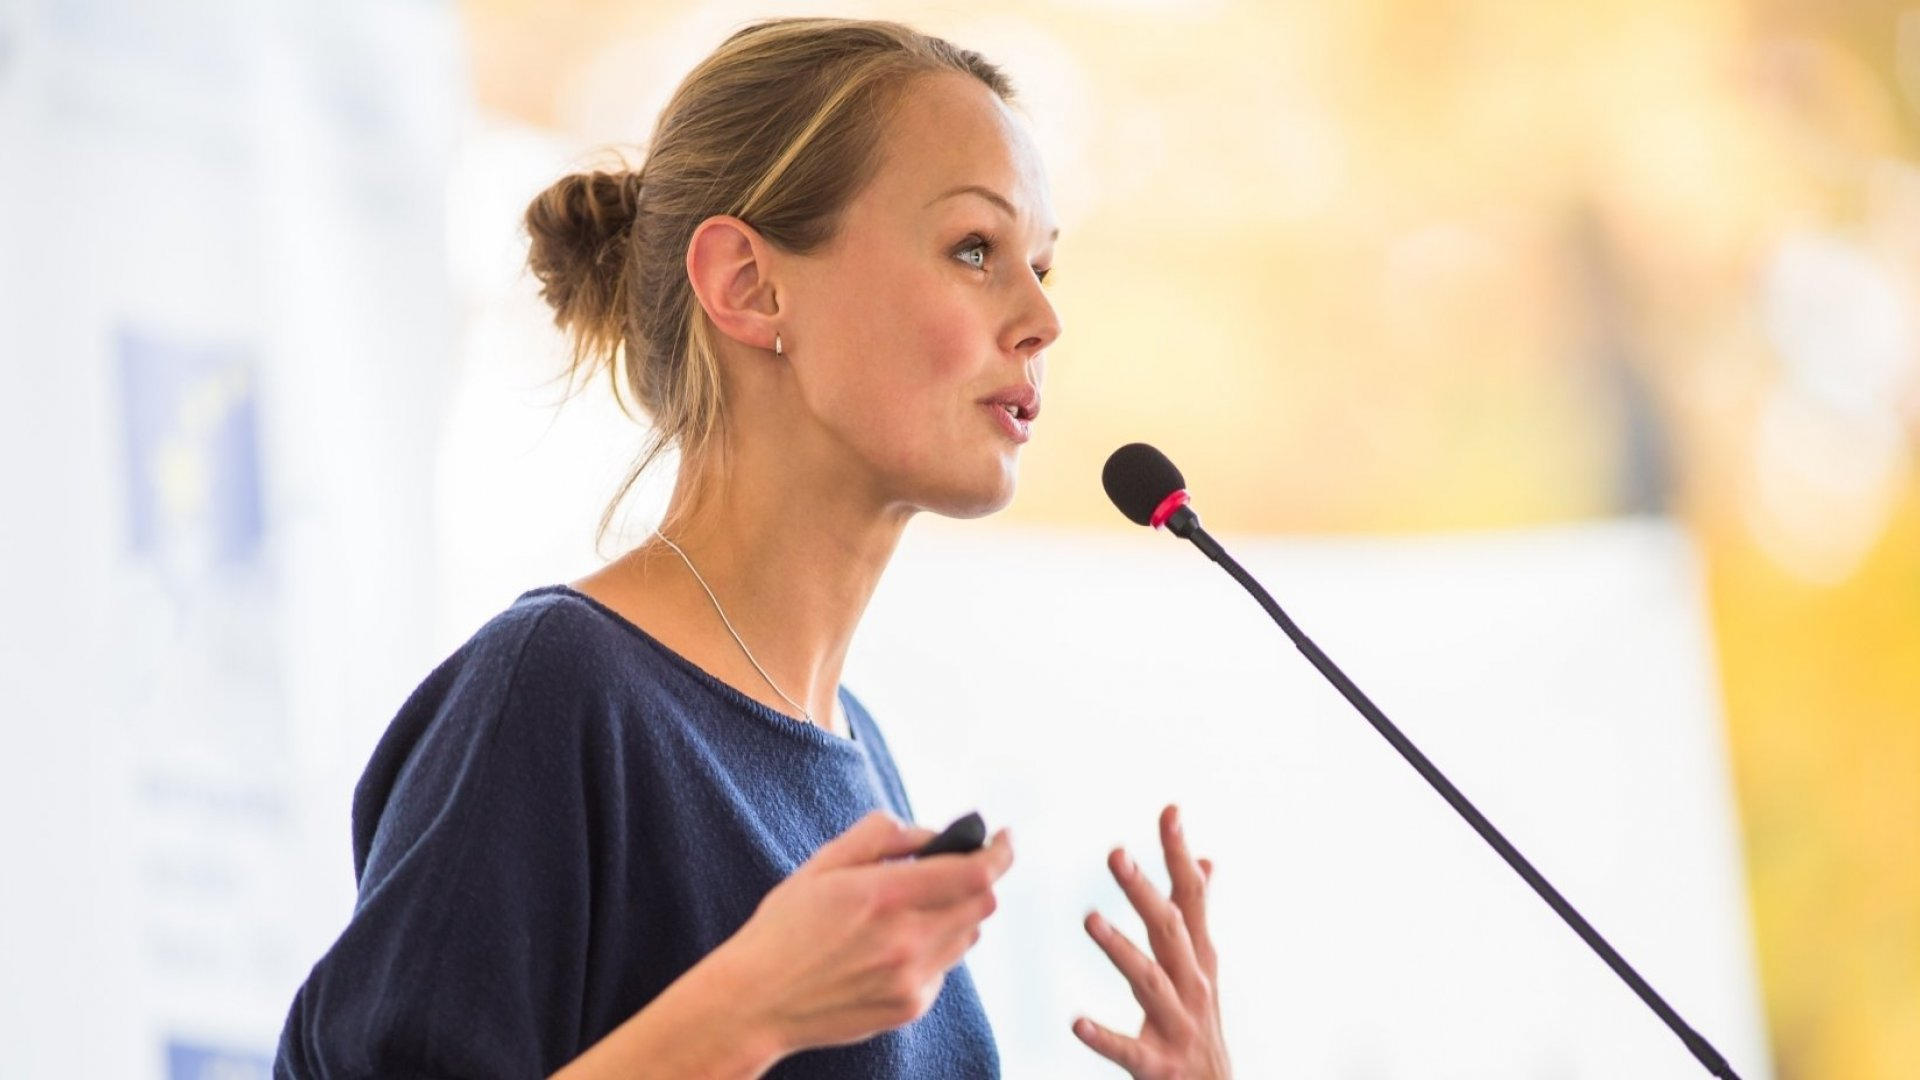 These 3 Issues Make People Forget Up to 90 Percent of Your Presentation